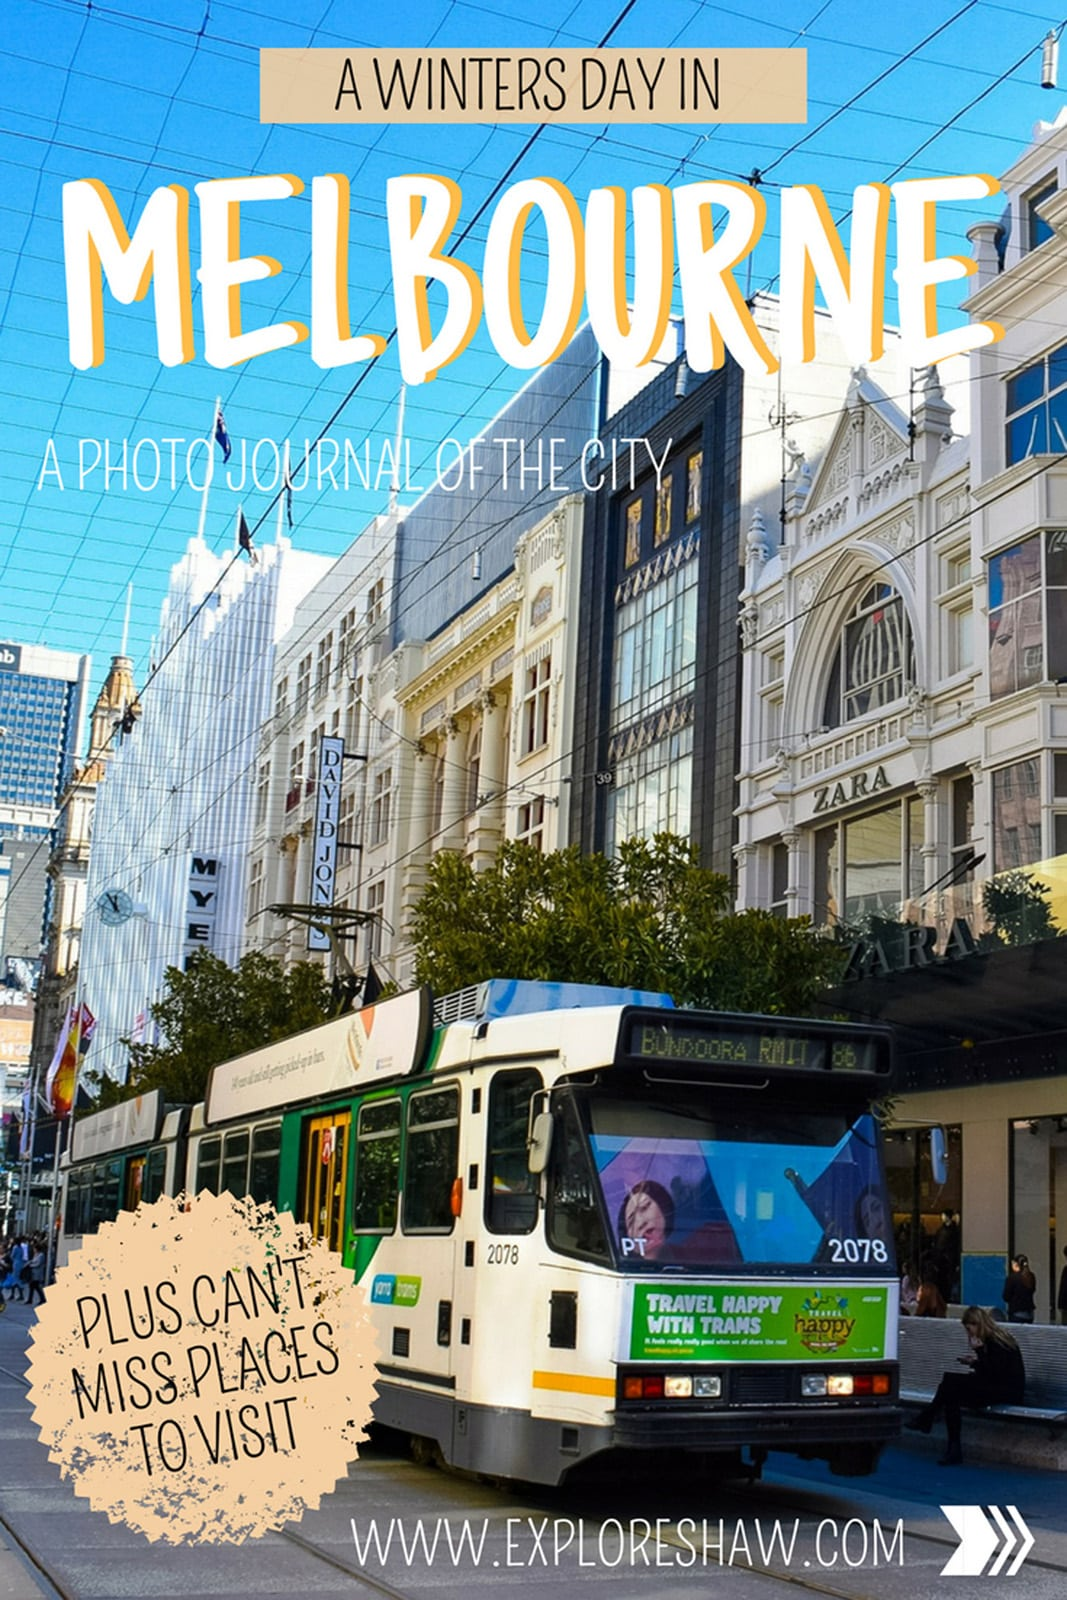 Exploring Melbourne on a sunny winters day - a photo journal.